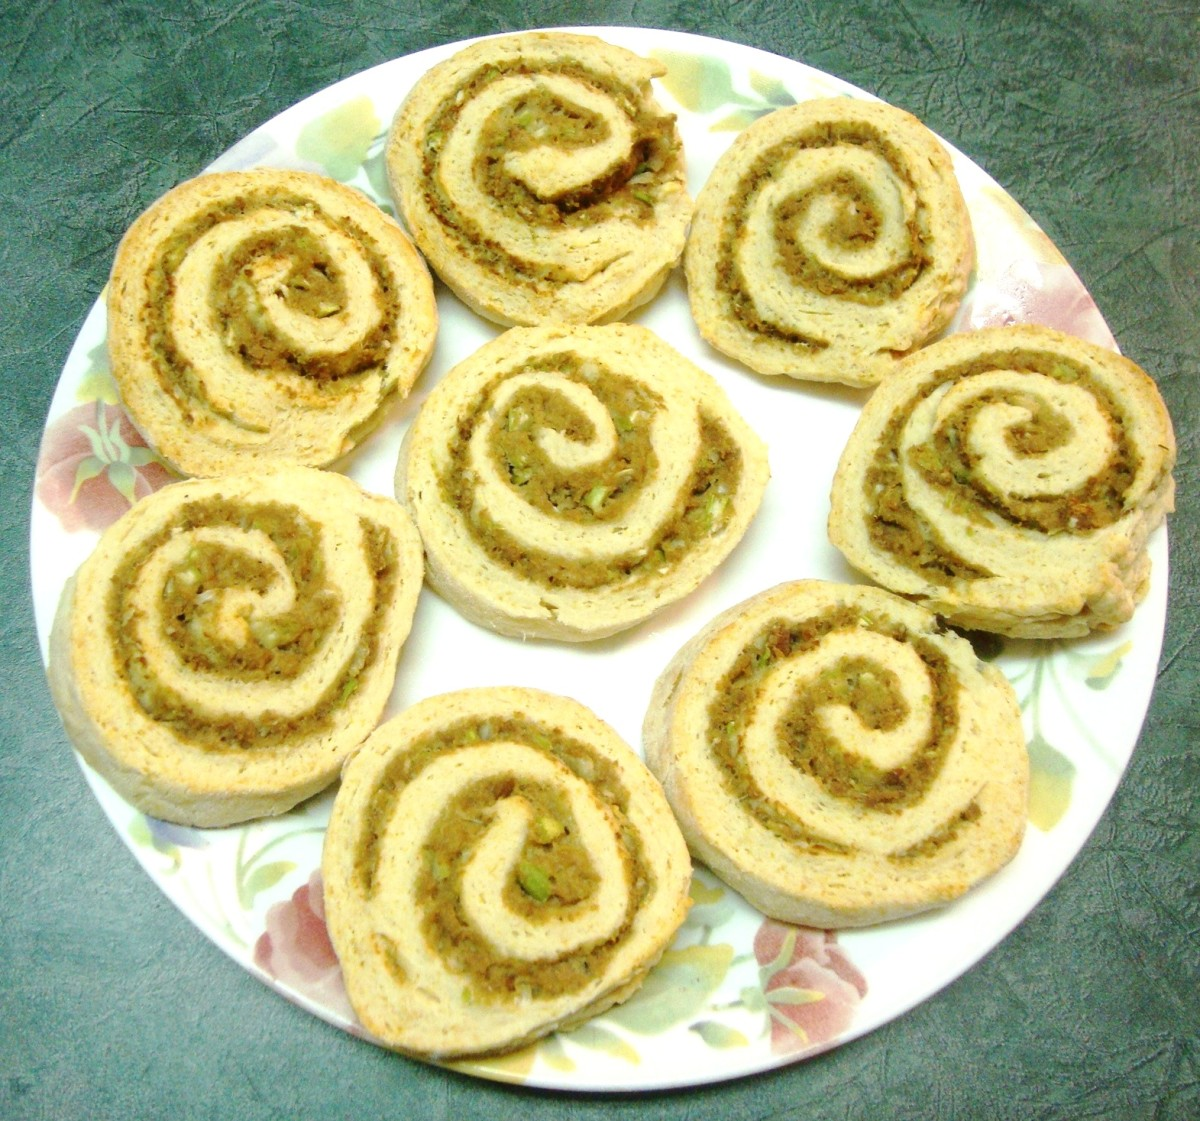 A meat filling peeks out from biscuits spirals.